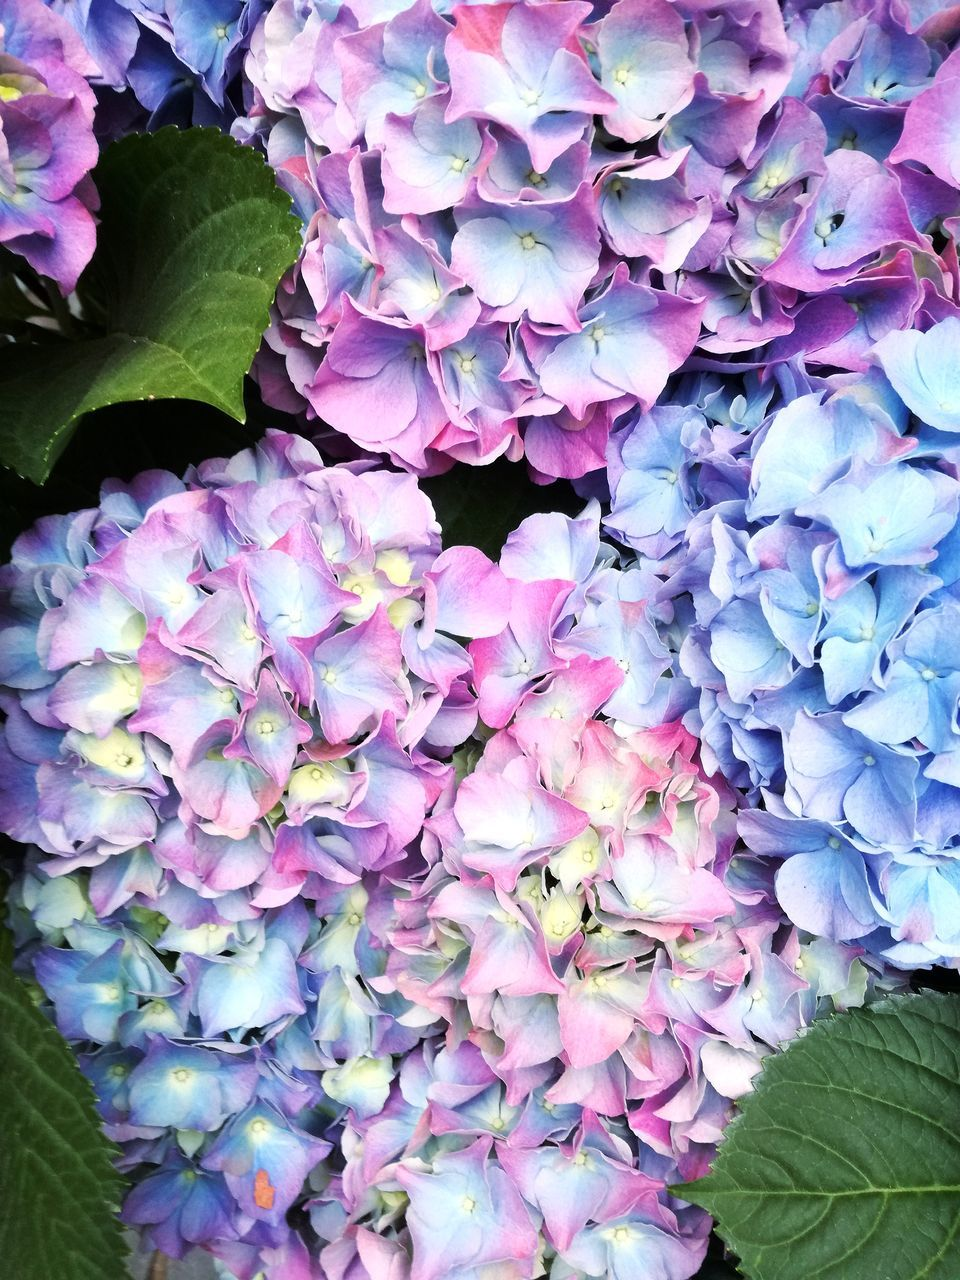 flower, beauty in nature, petal, nature, purple, growth, fragility, leaf, plant, hydrangea, no people, freshness, outdoors, blooming, flower head, day, close-up